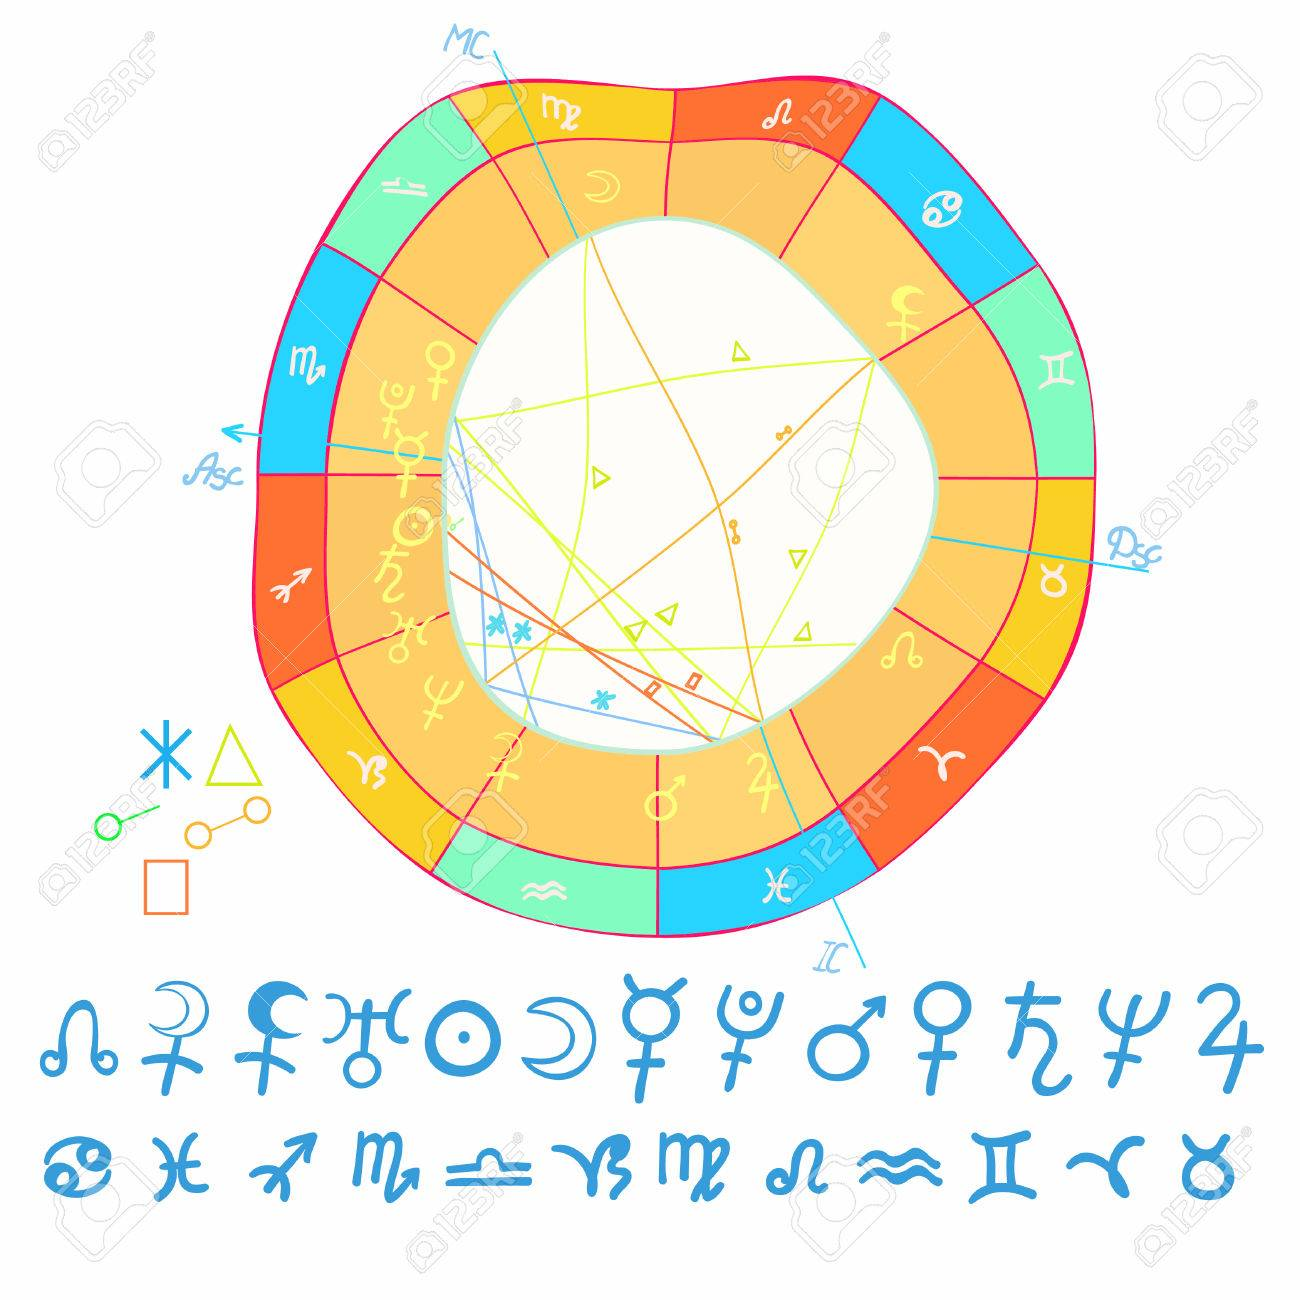 13 sign astrology natal chart gallery free any chart examples 13 sign astrology natal chart images free any chart examples 13 sign astrology natal chart images nvjuhfo Image collections